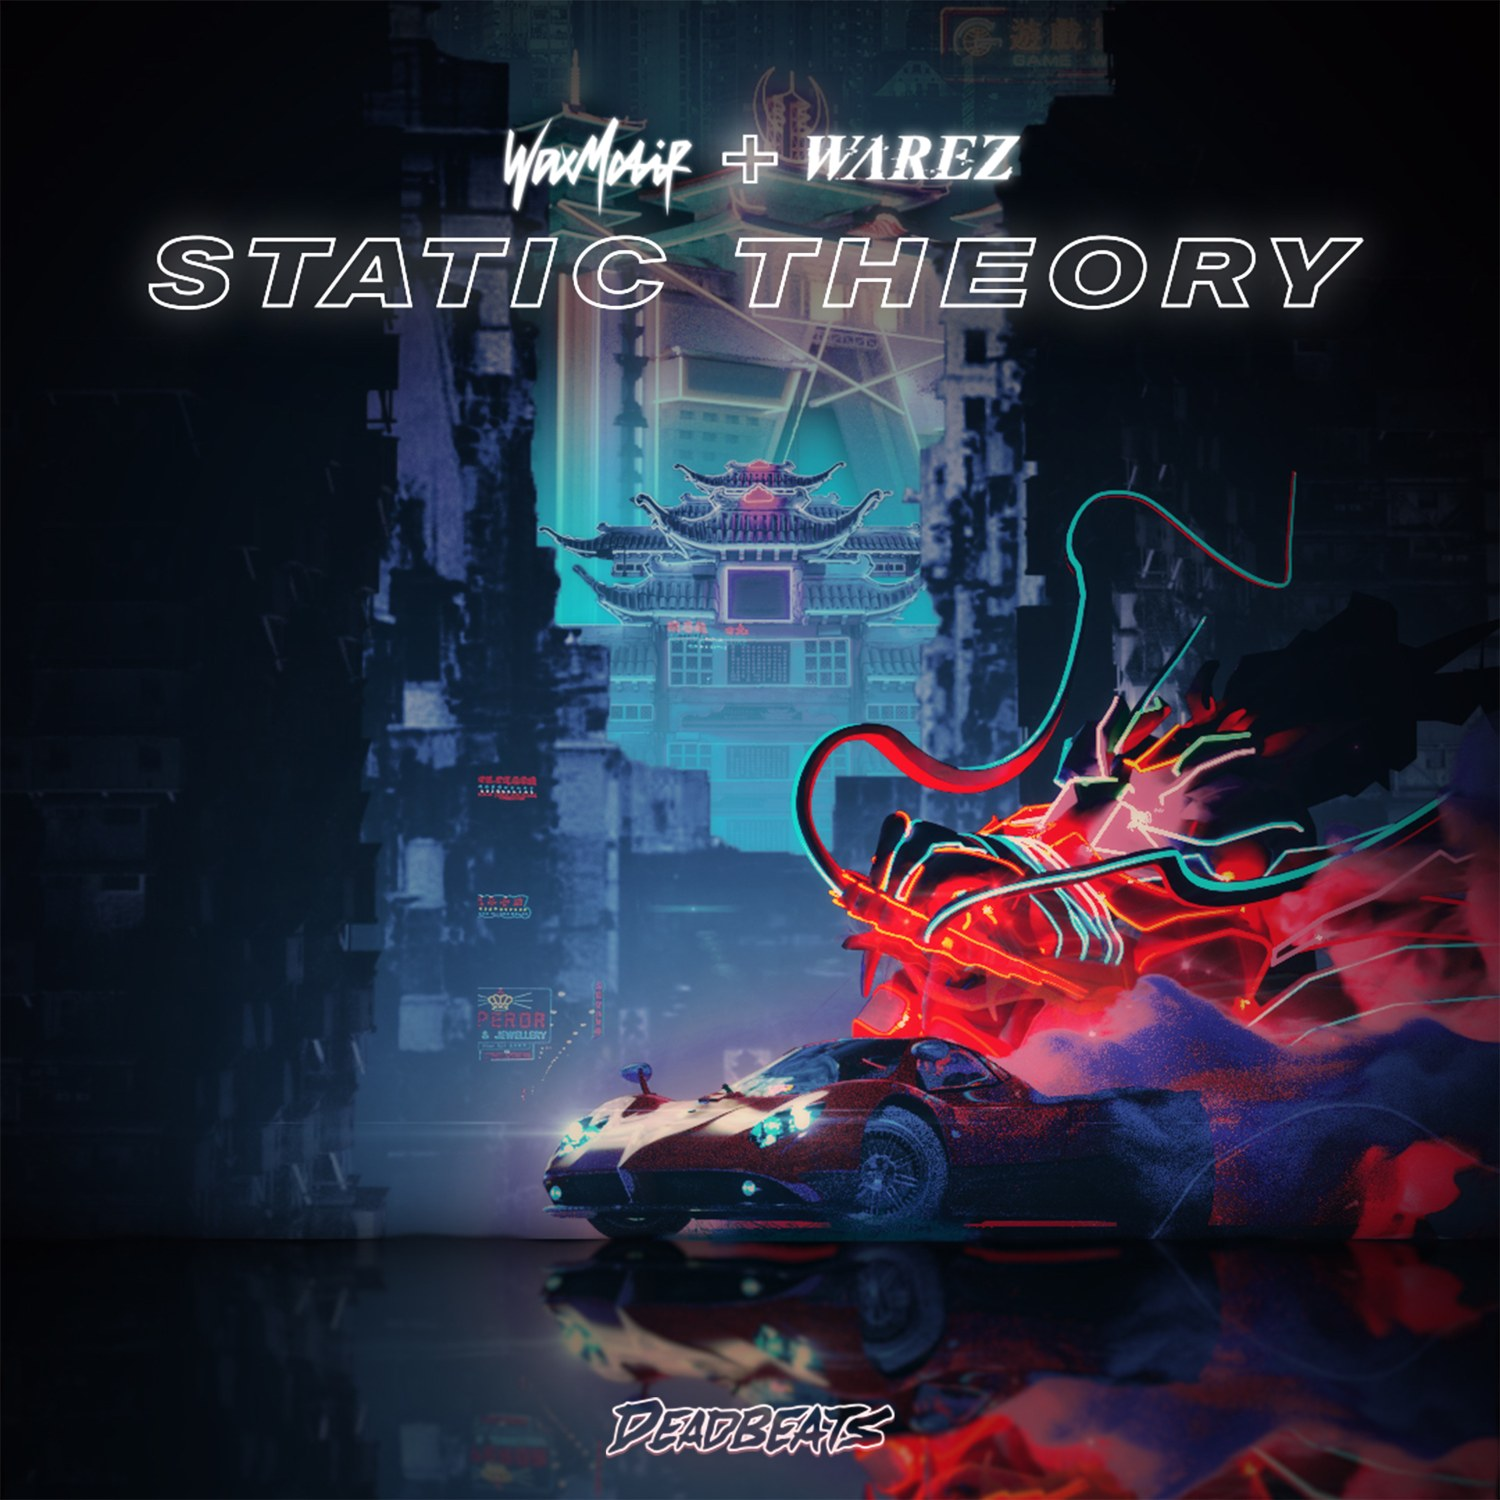 Wax Motif & Warez Offer Electrifying New Release